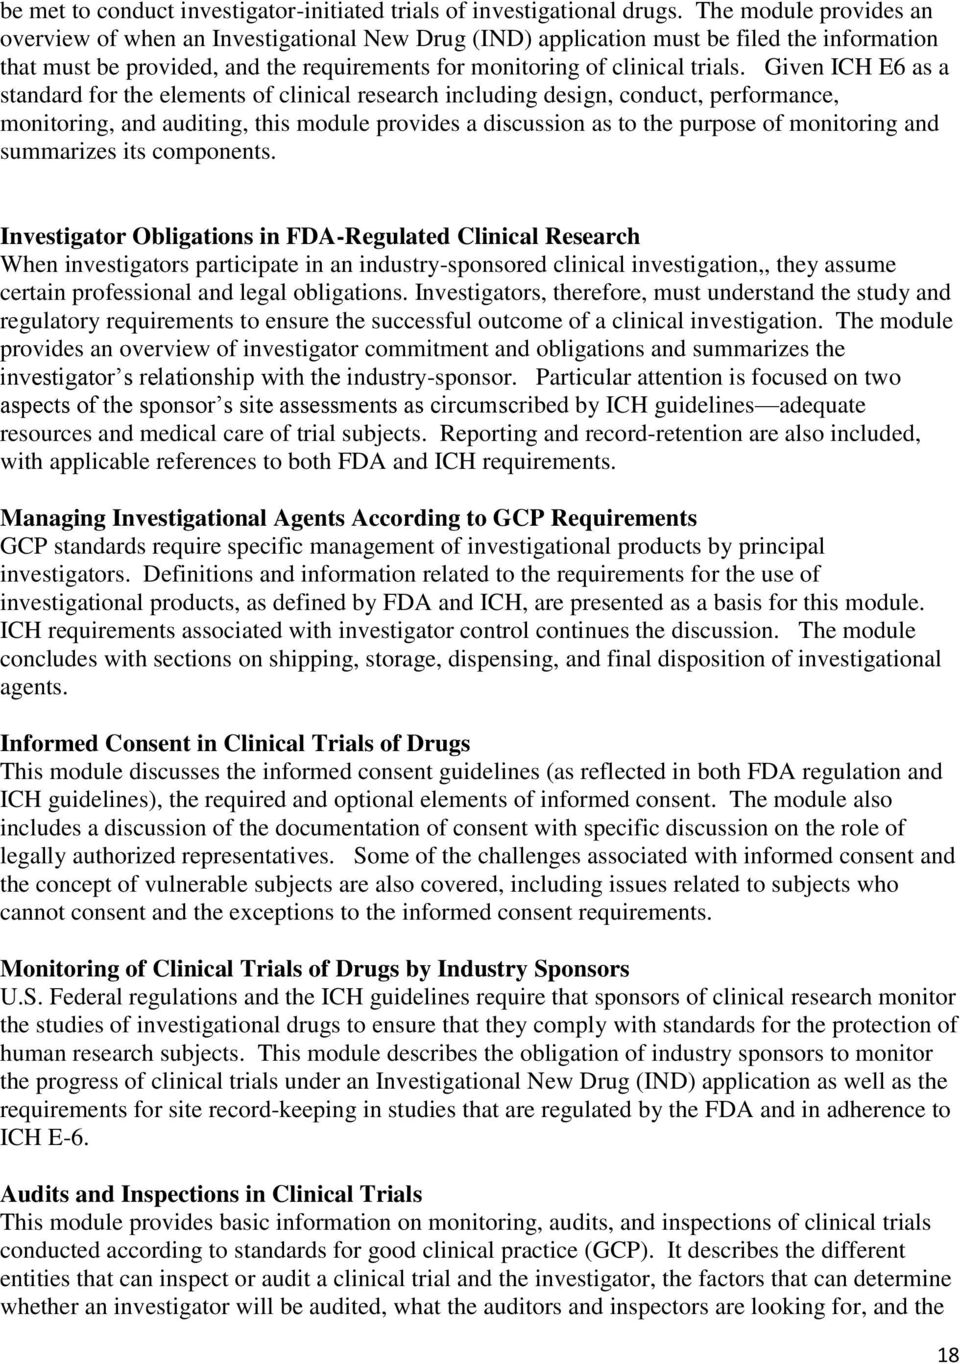 Given ICH E6 as a standard for the elements of clinical research including design, conduct, performance, monitoring, and auditing, this module provides a discussion as to the purpose of monitoring